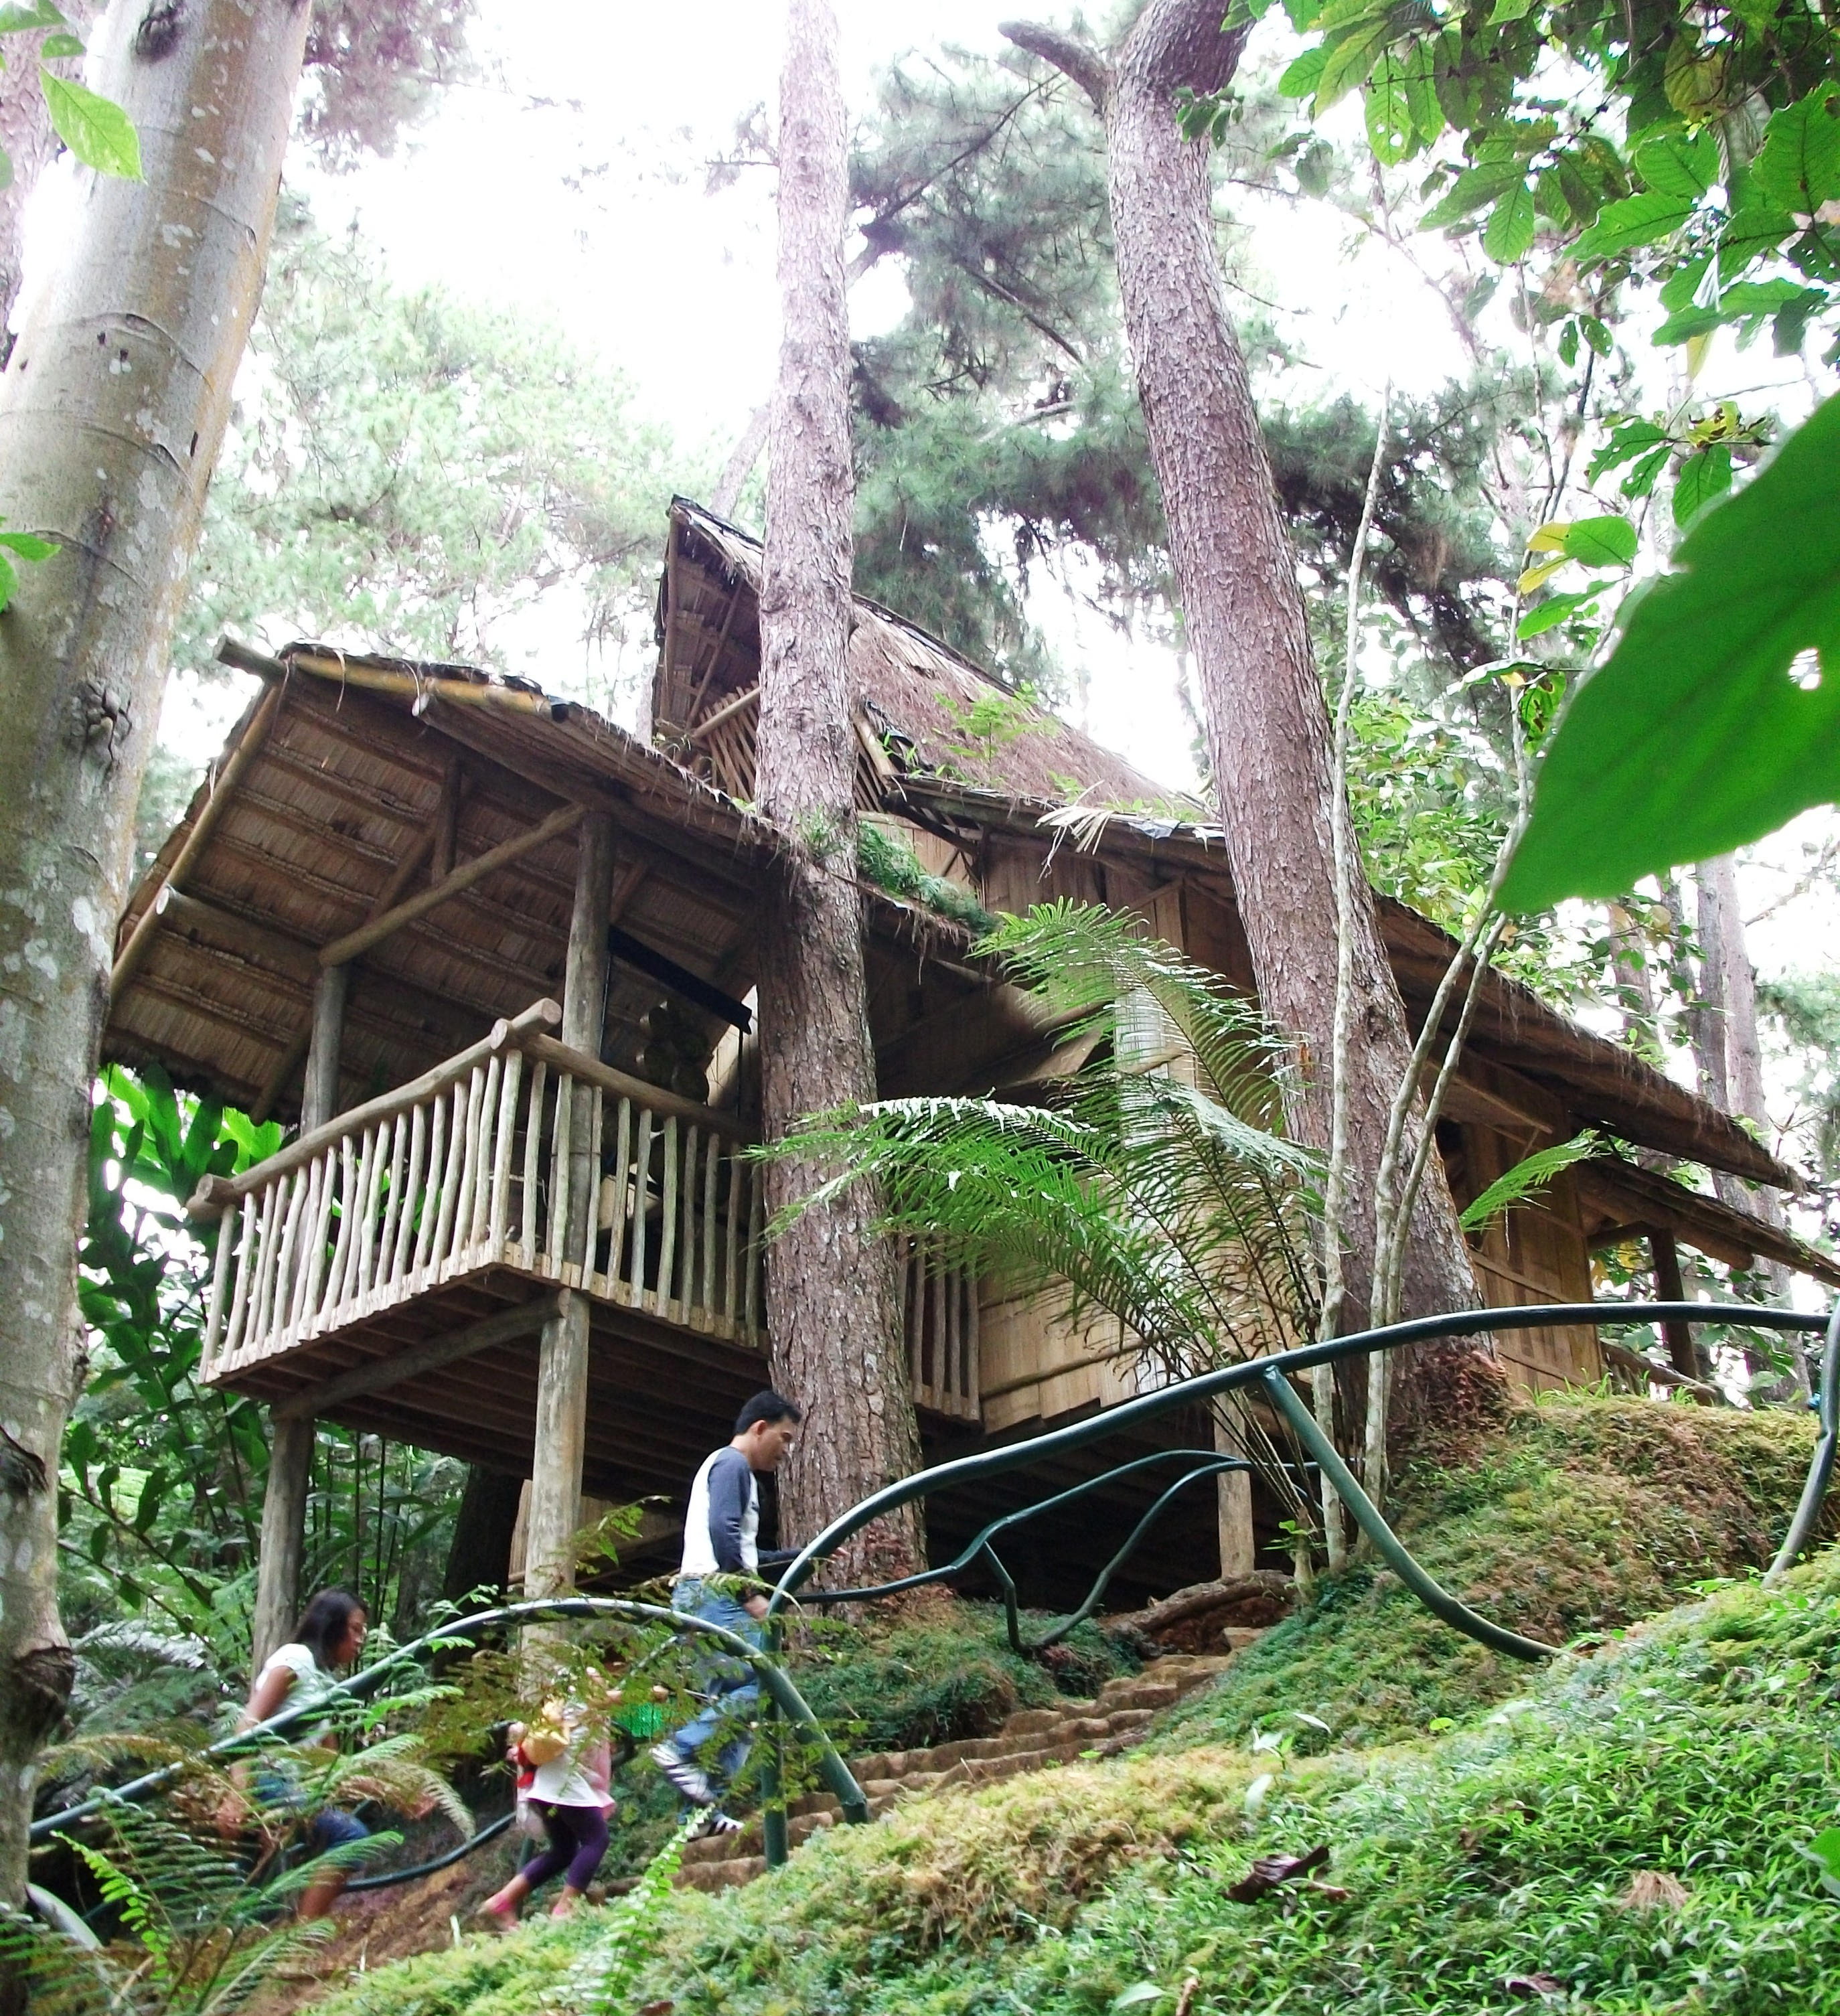 Philippines Native House Designs And Floor Plans also Bahay Kubo How To Do It further The Reality About Building With Bamboo additionally Nipa Hut Village in addition Nipa House. on hut nipa house design philippines